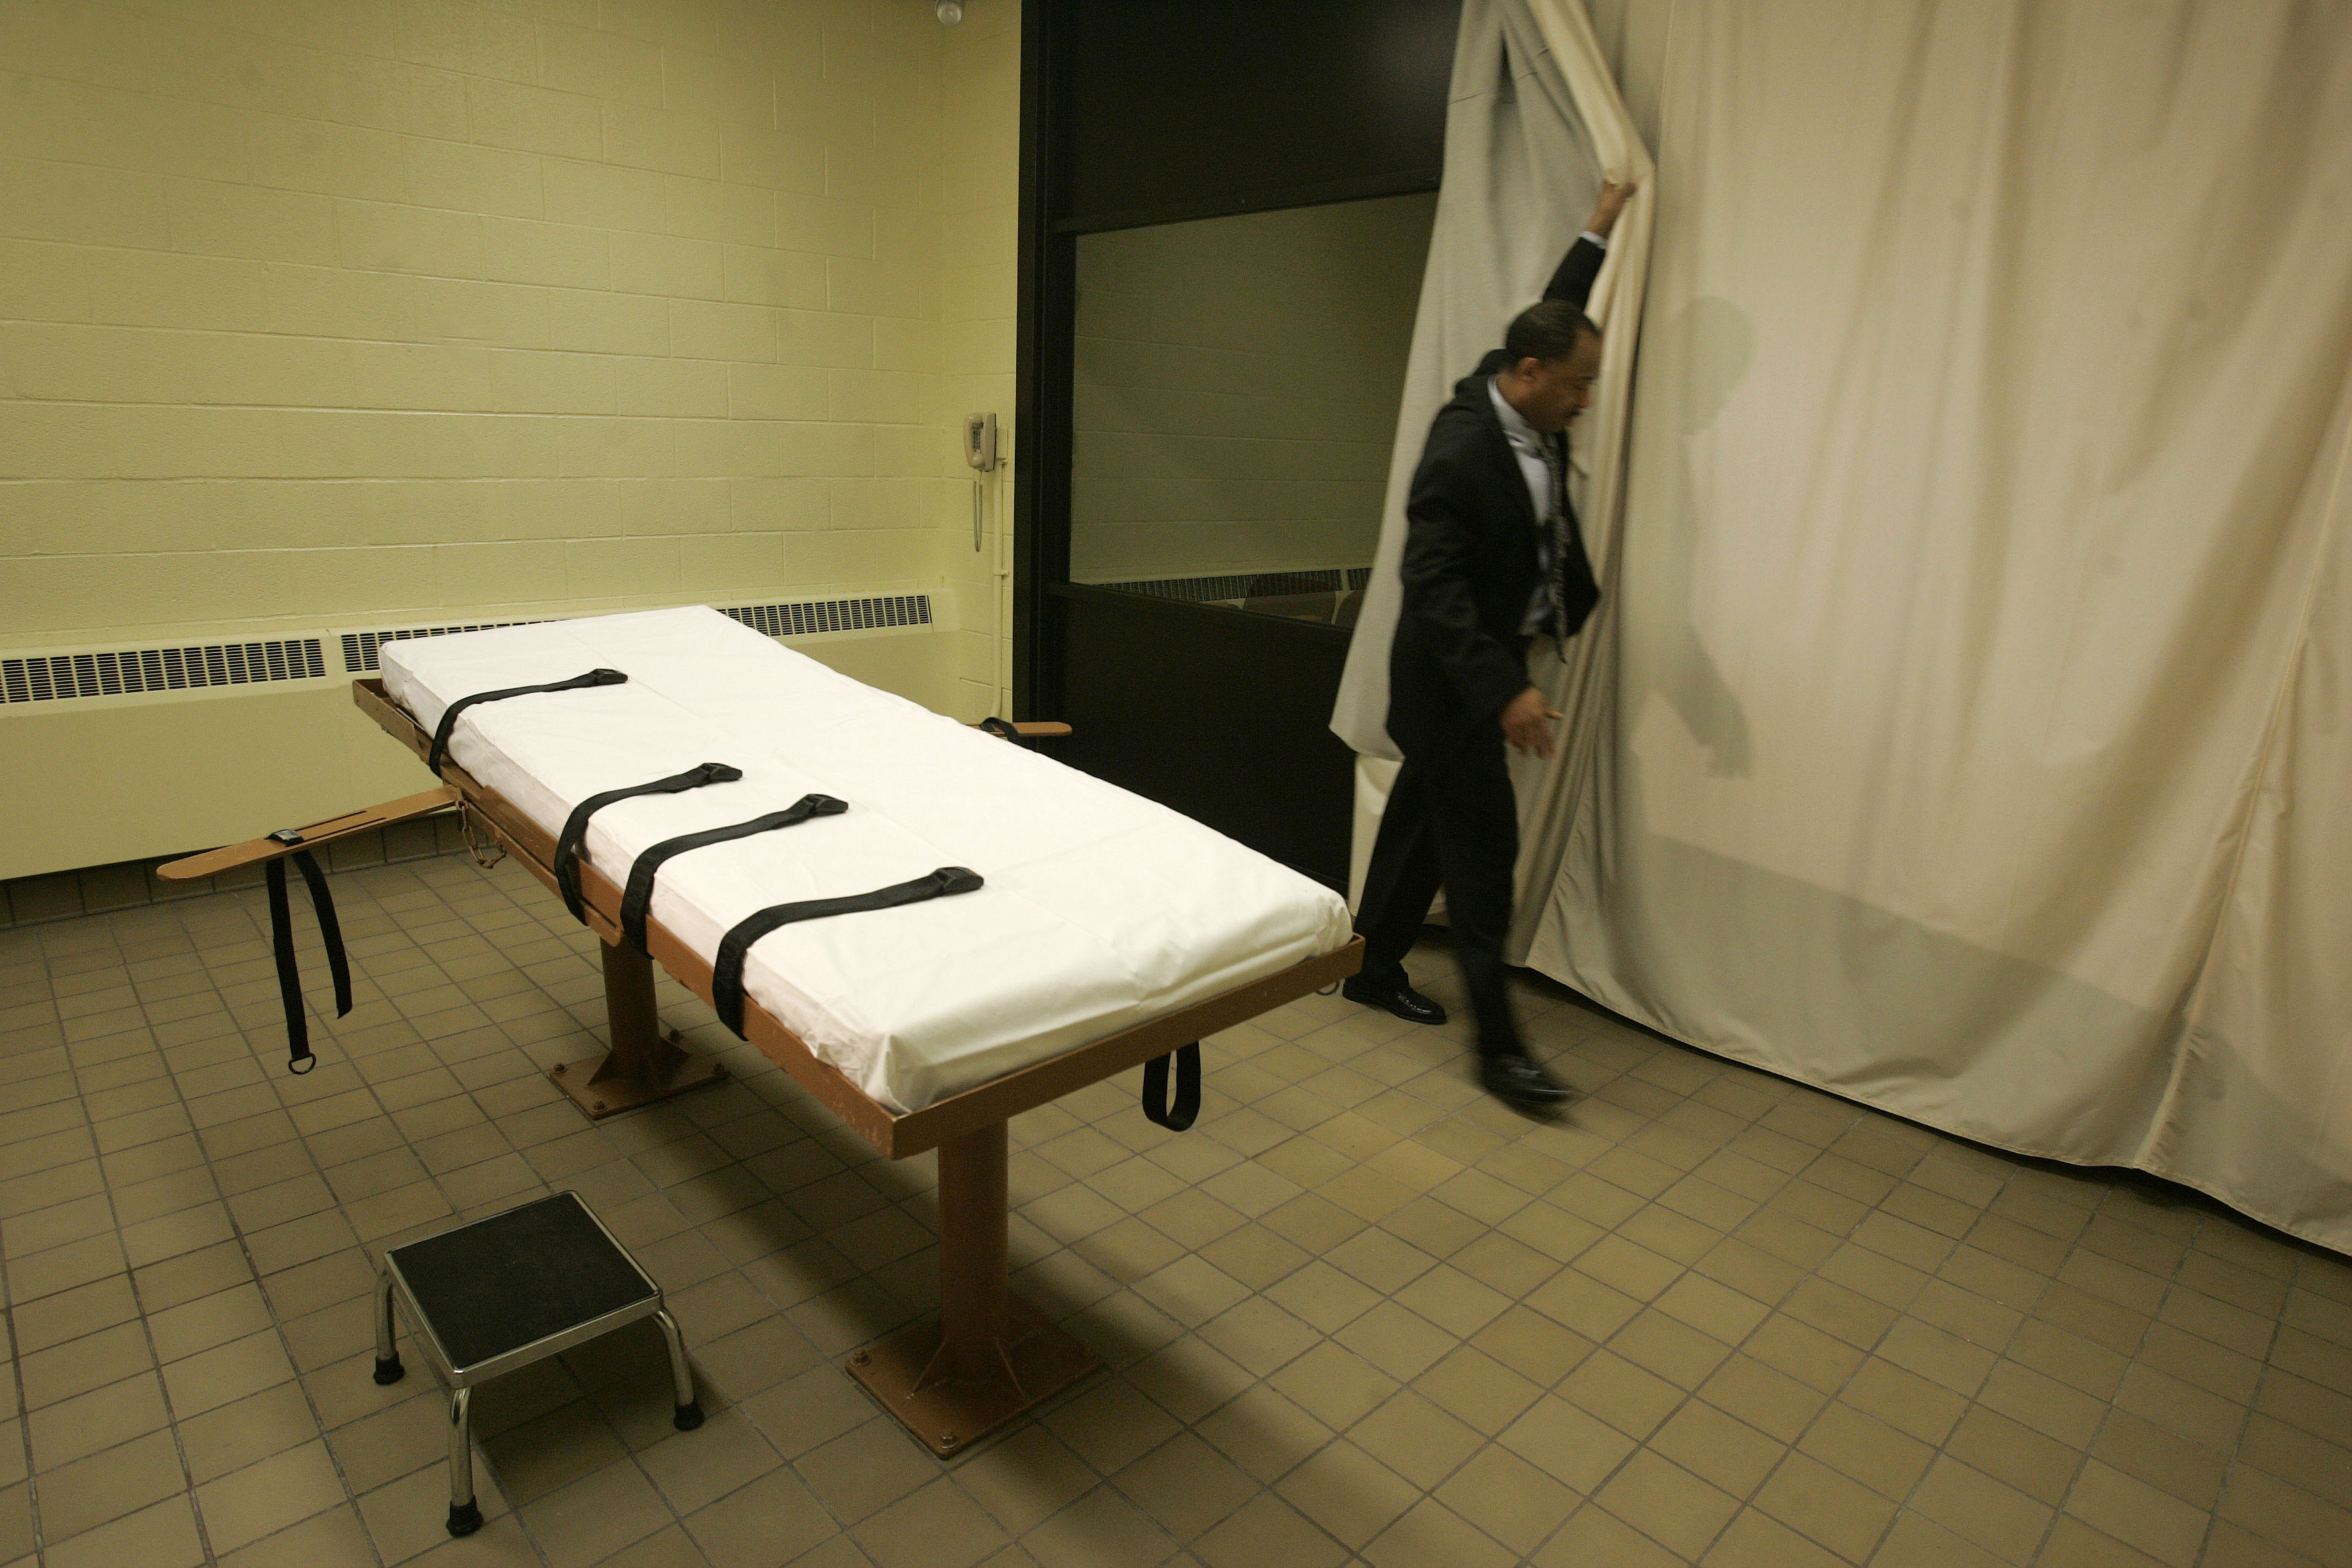 The-death-chamber-at-the-Southern-Ohio-Correctional-Facility-in-Lucasville-Ohio-AP-ImagesKiichiro-Sato-File